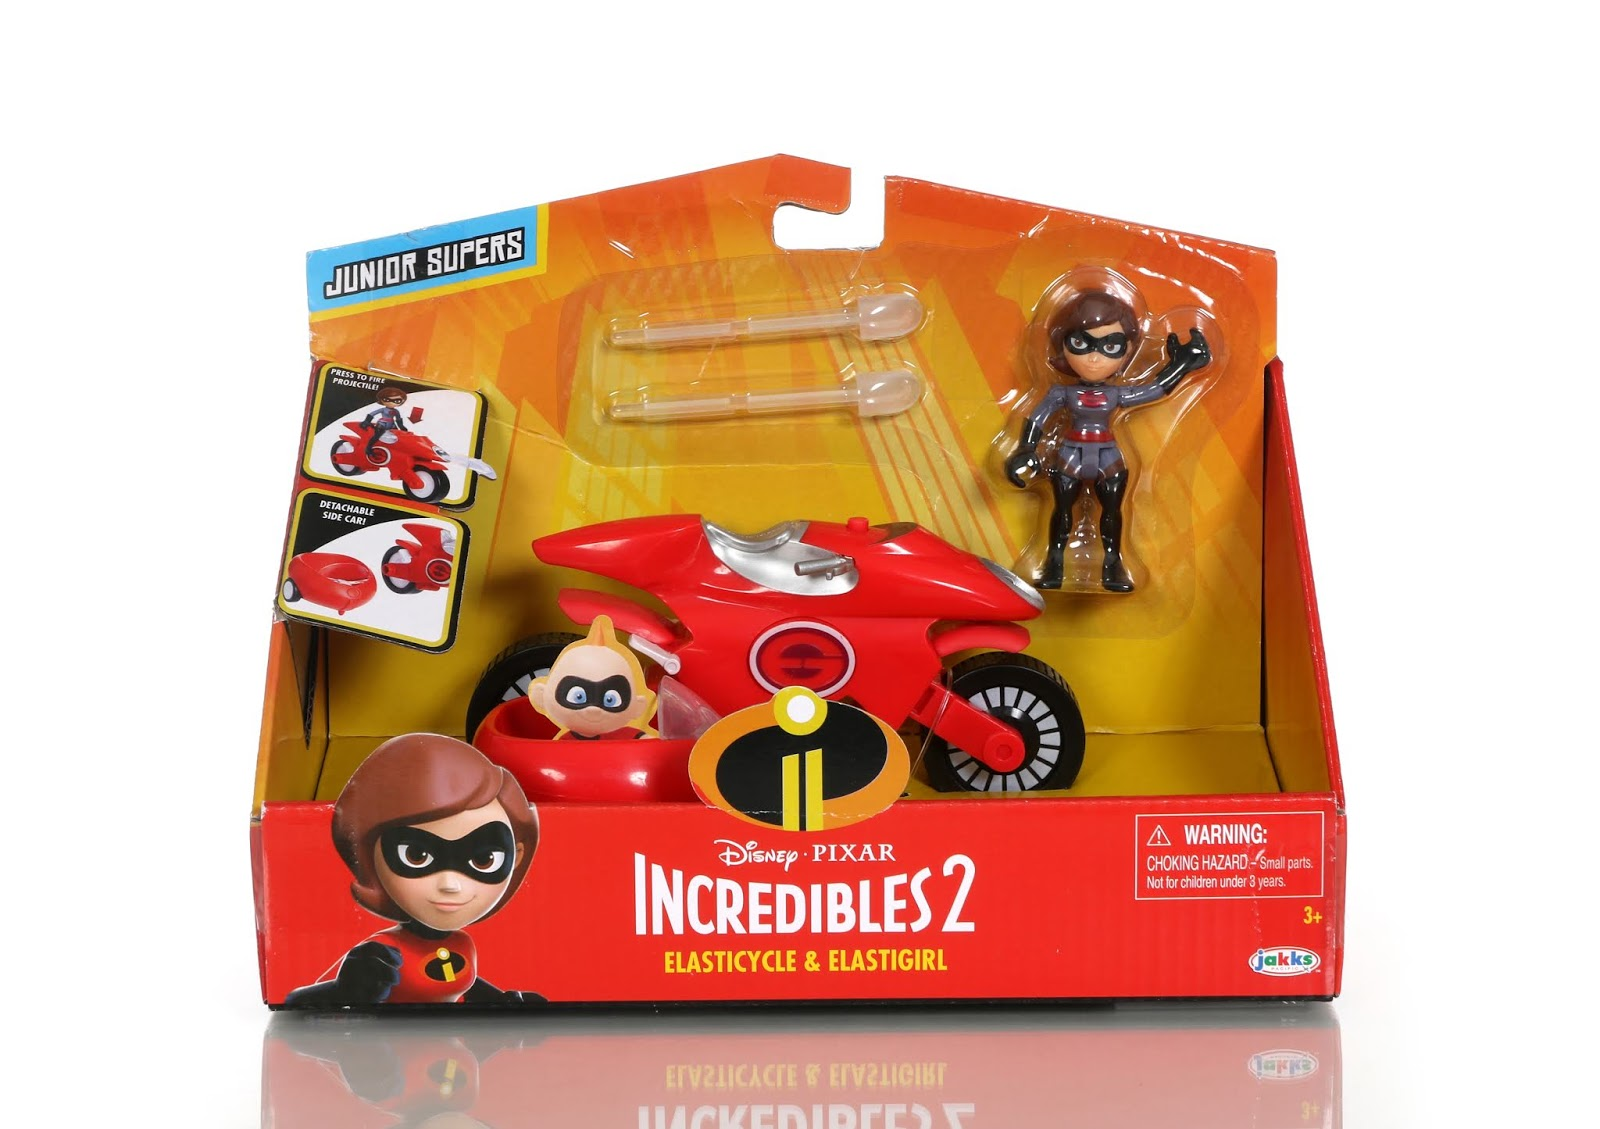 "Incredibles 2 Jakks Pacific Junior Supers"" Incredibile & Elasticycle Vehicles"